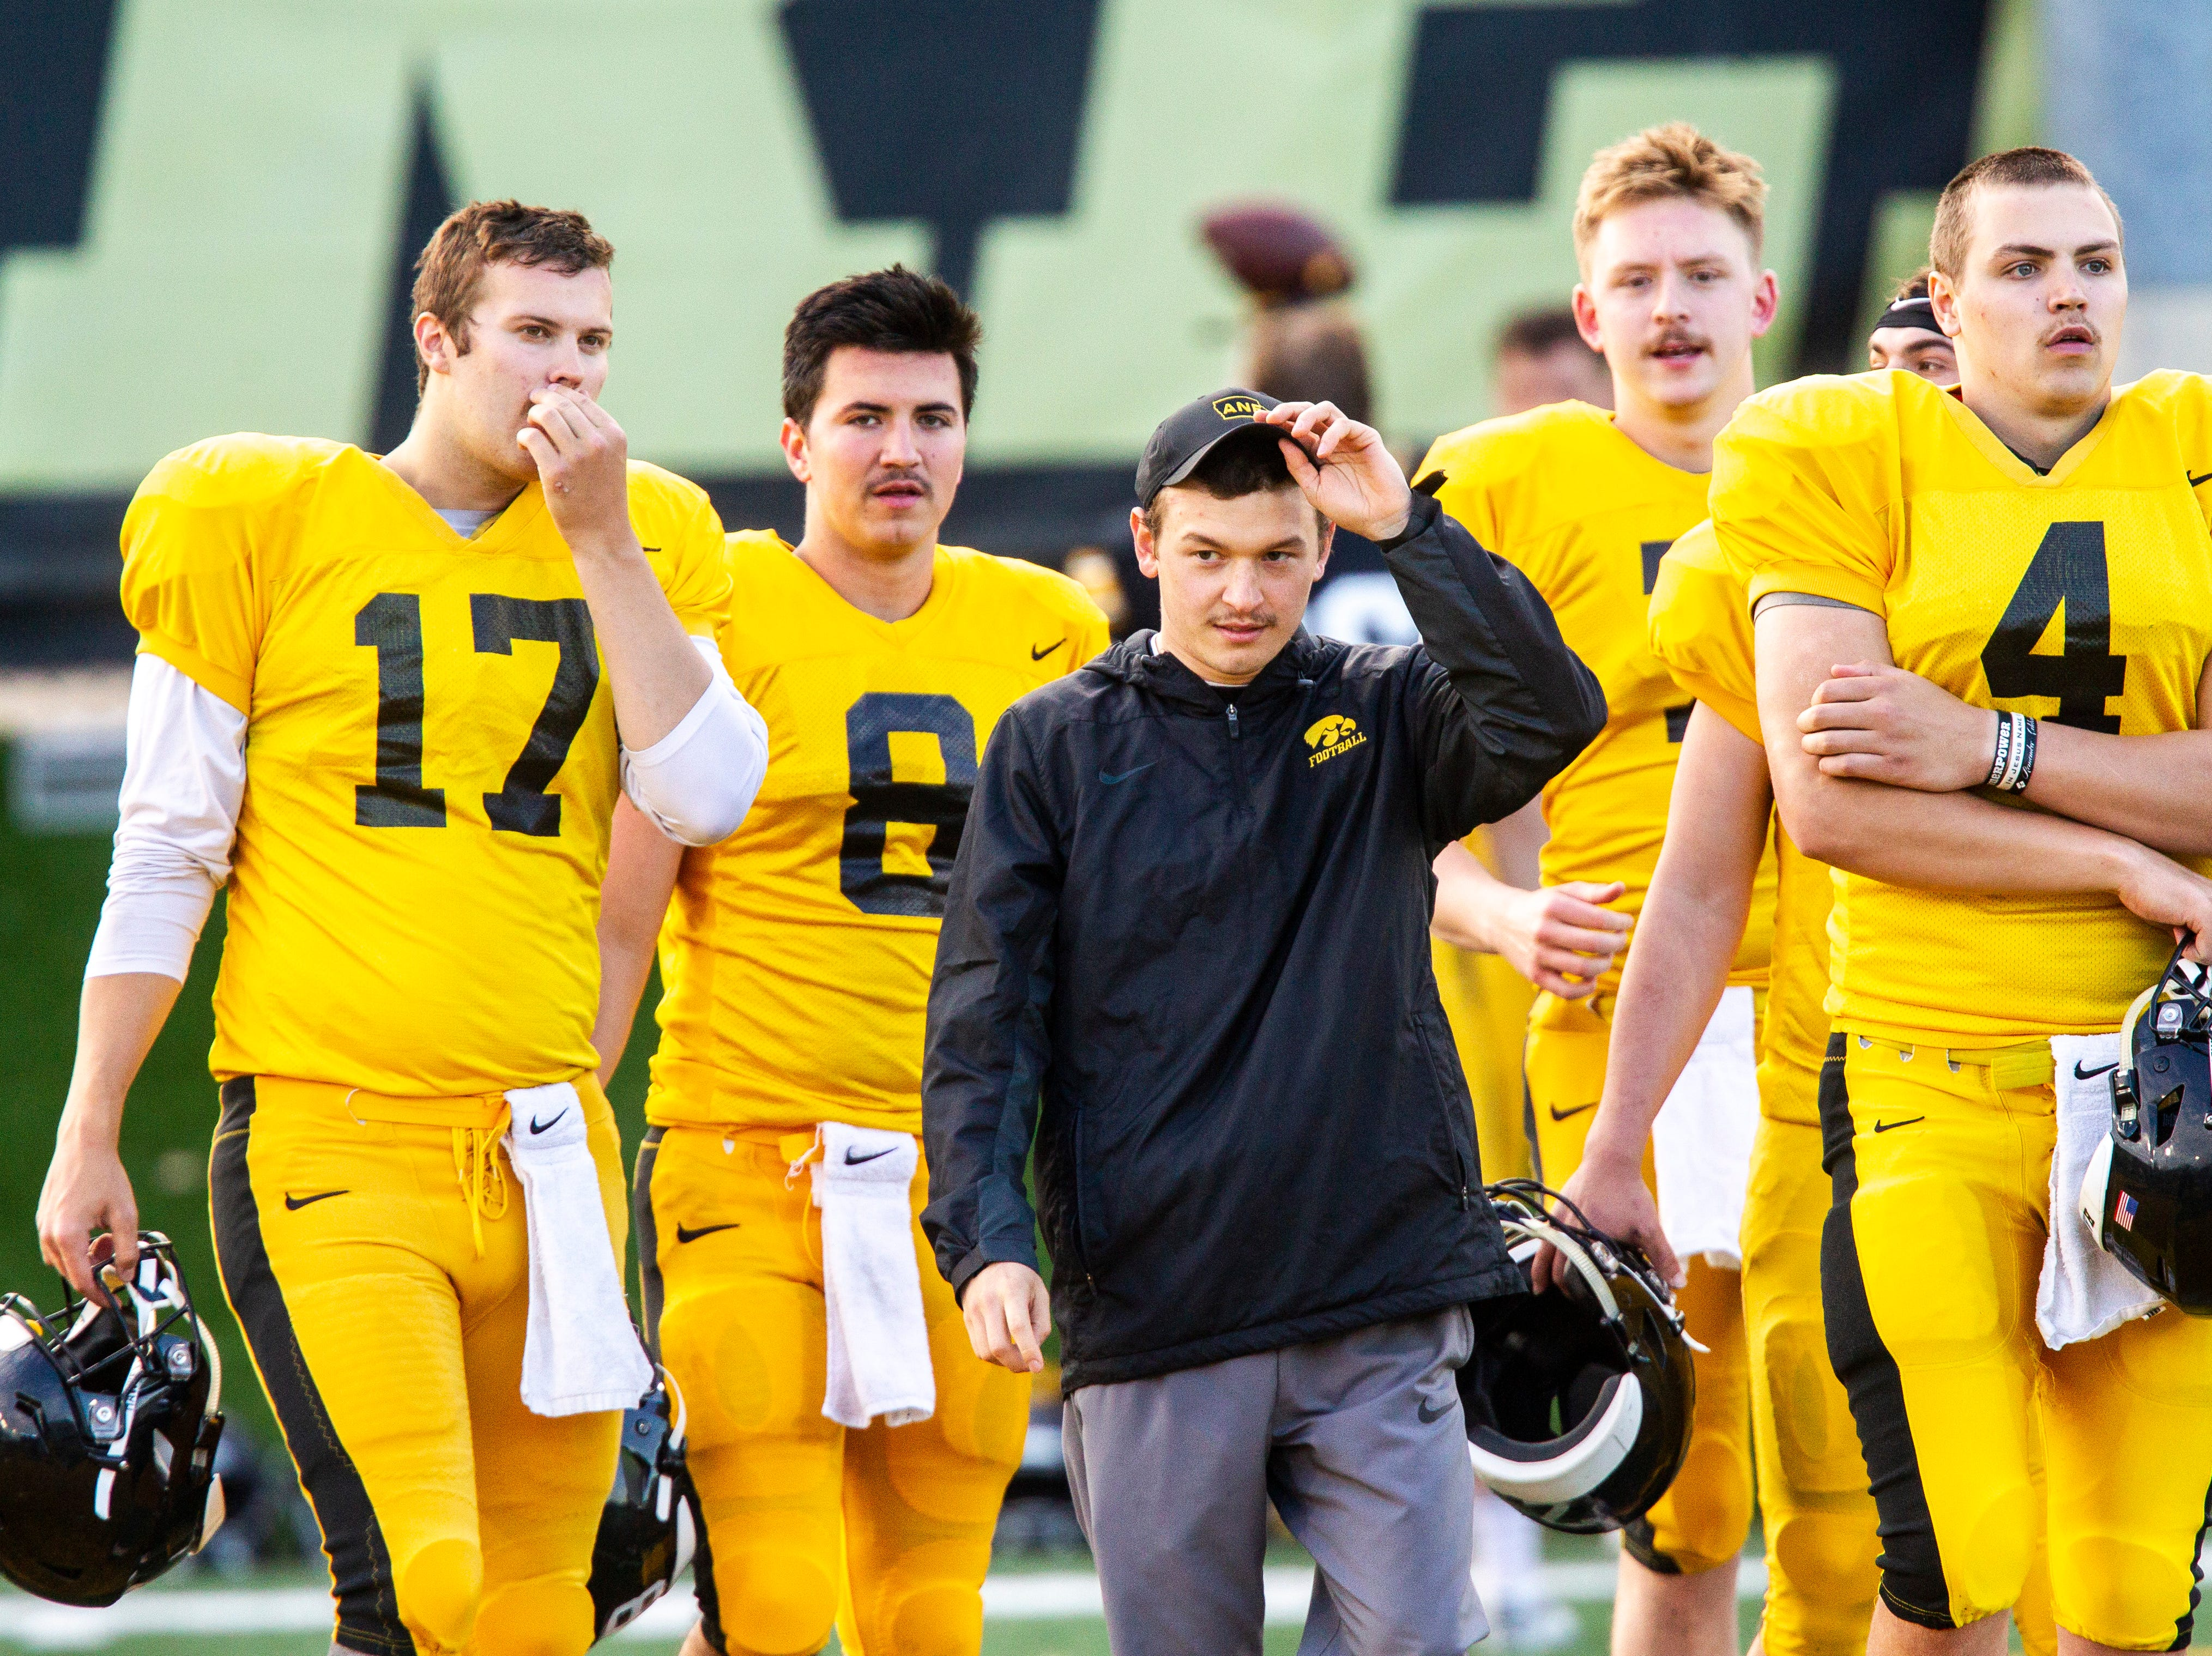 Iowa quarterbacks, from left, Ryan Schmidt (17) Alex Padilla (8), Spencer Petras and Nate Stanley (4) sport mustaches during the final spring football practice, Friday, April 26, 2019, at the University of Iowa outdoor practice facility in Iowa City, Iowa.